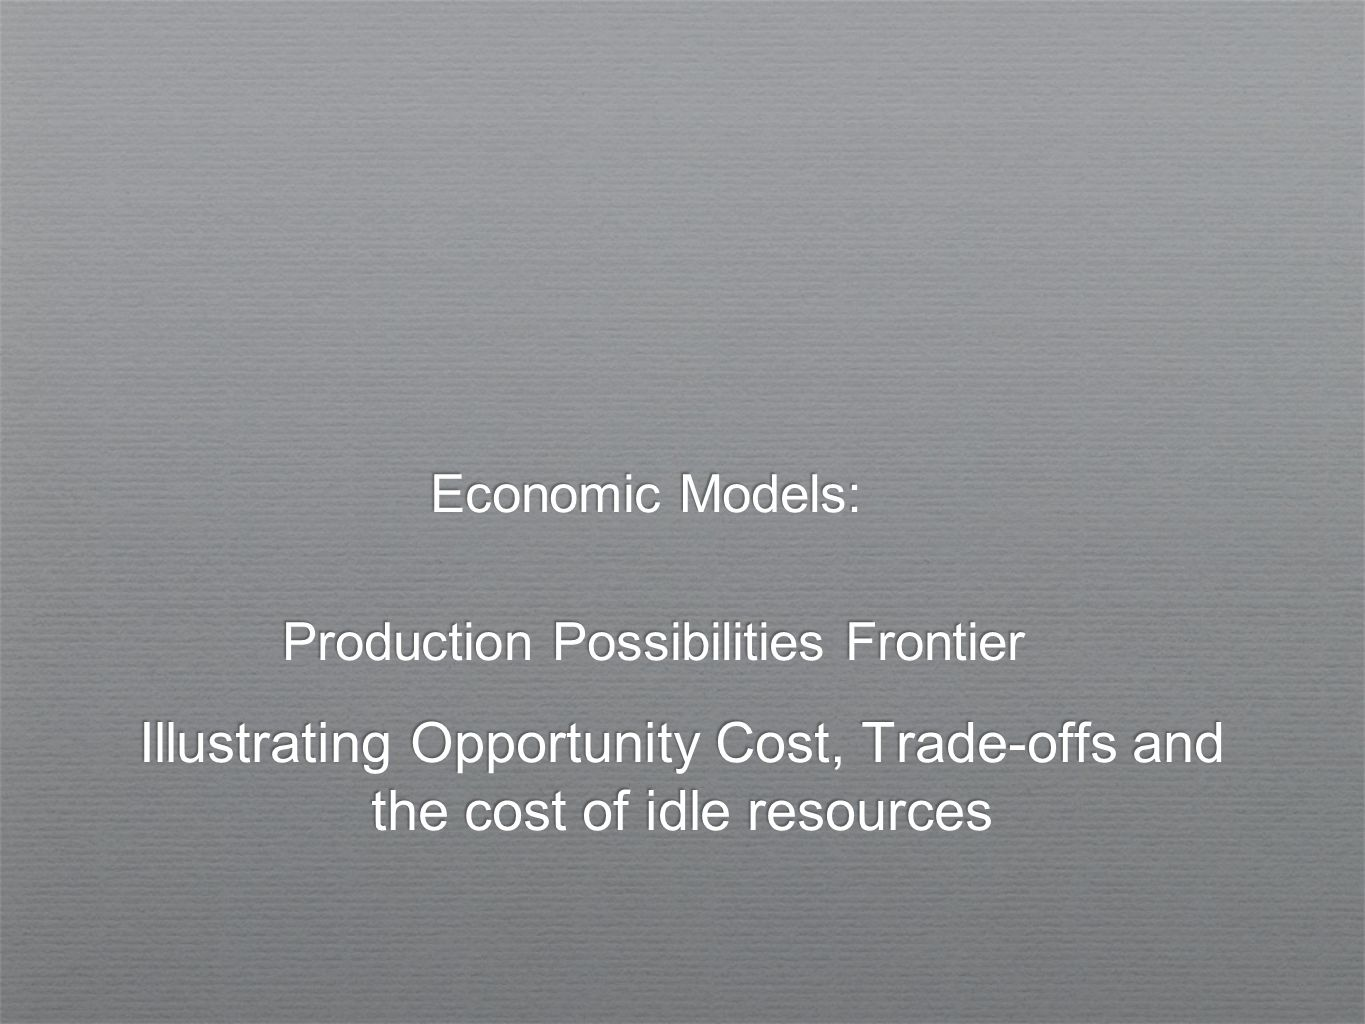 Economic Models: Production Possibilities Frontier